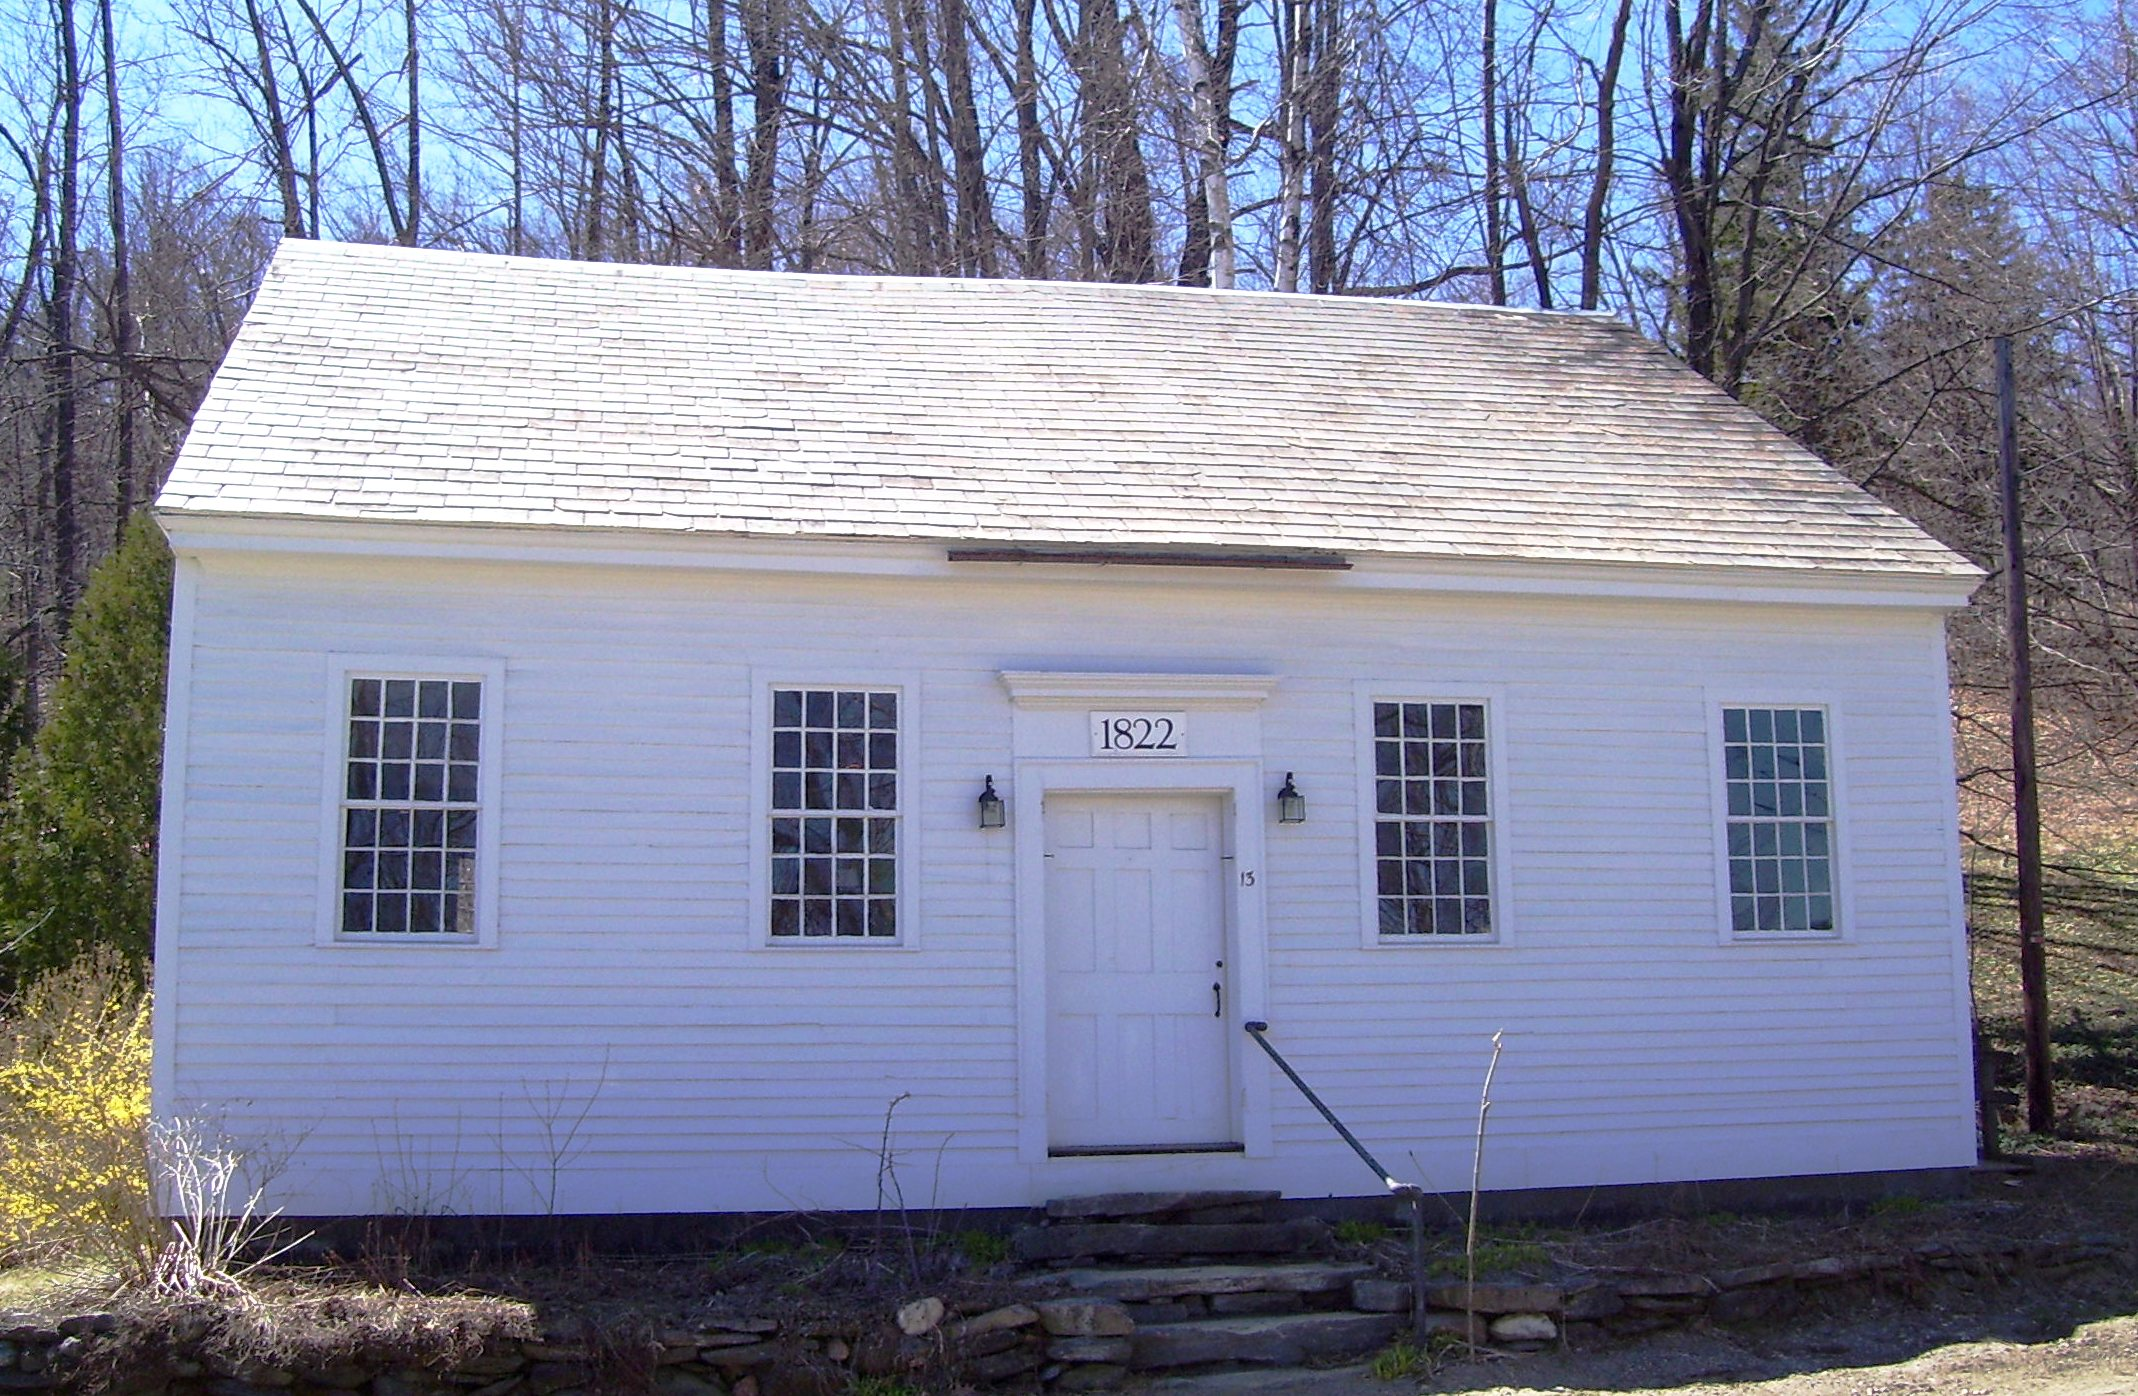 Town House, Marlboro, Vermont, built 1822 for Town Meetings